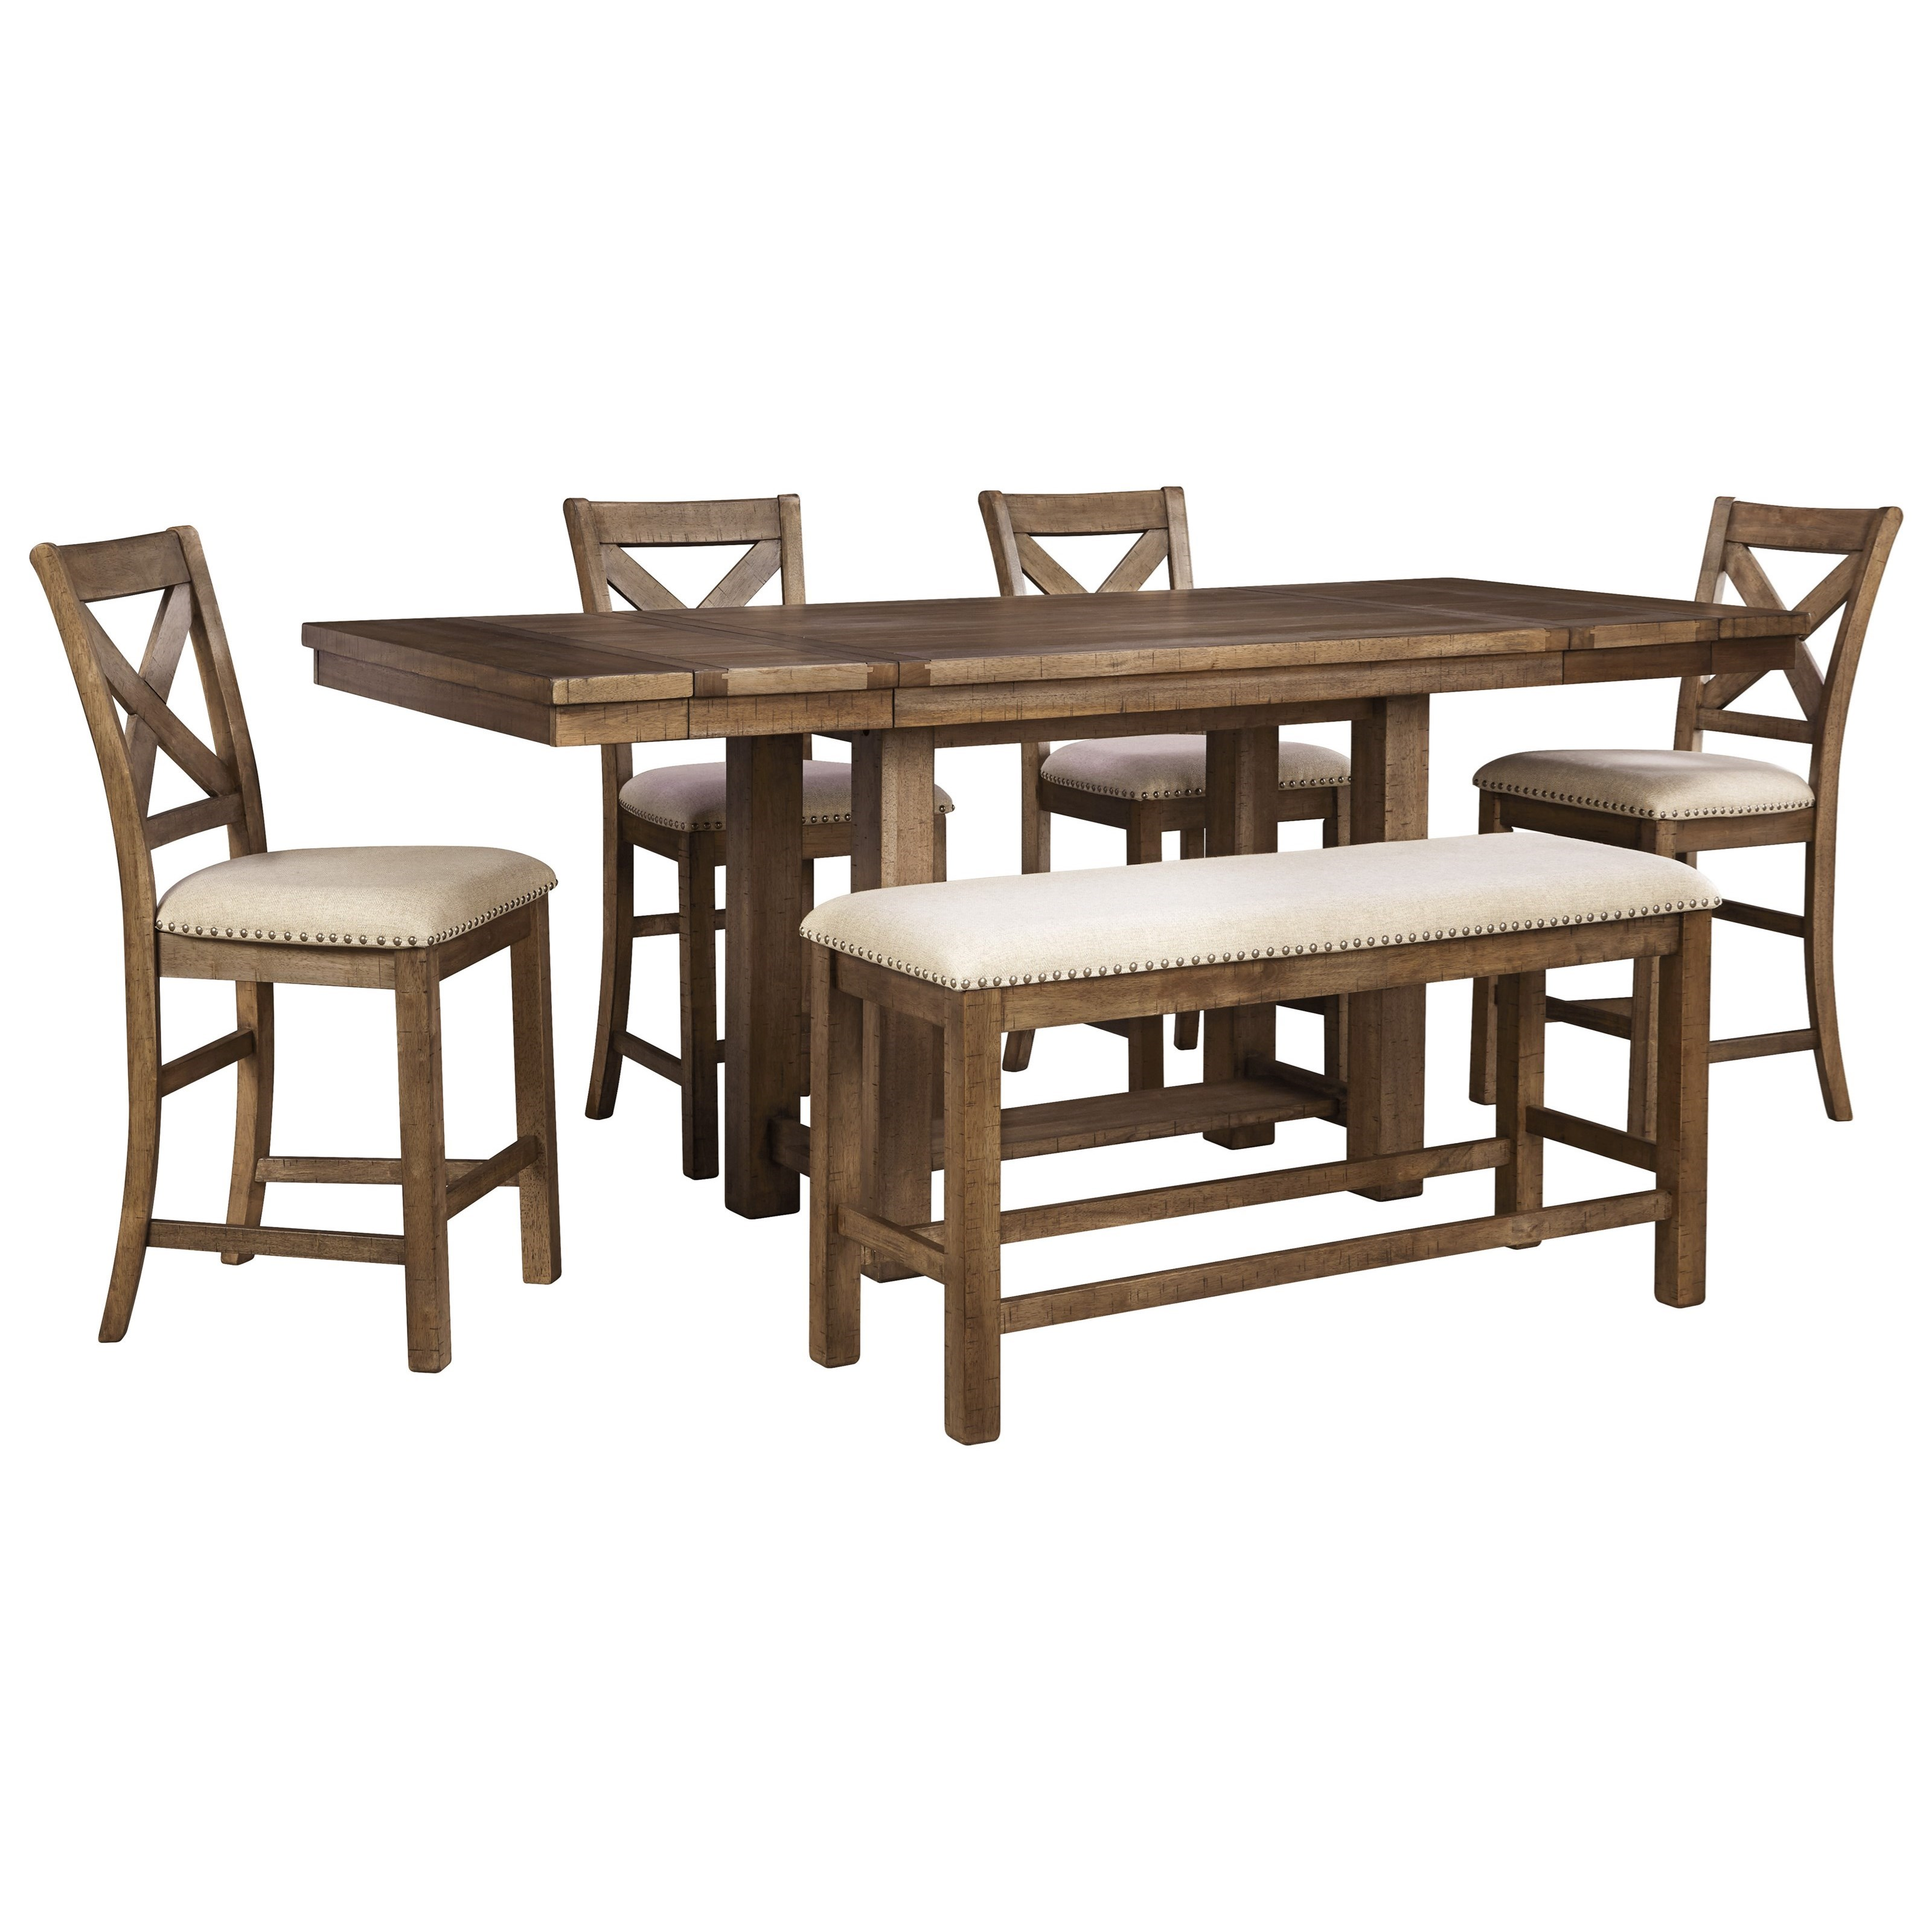 Moriville 6-Piece Rectangular Counter Table w/ Bench by Signature Design by Ashley at Houston's Yuma Furniture